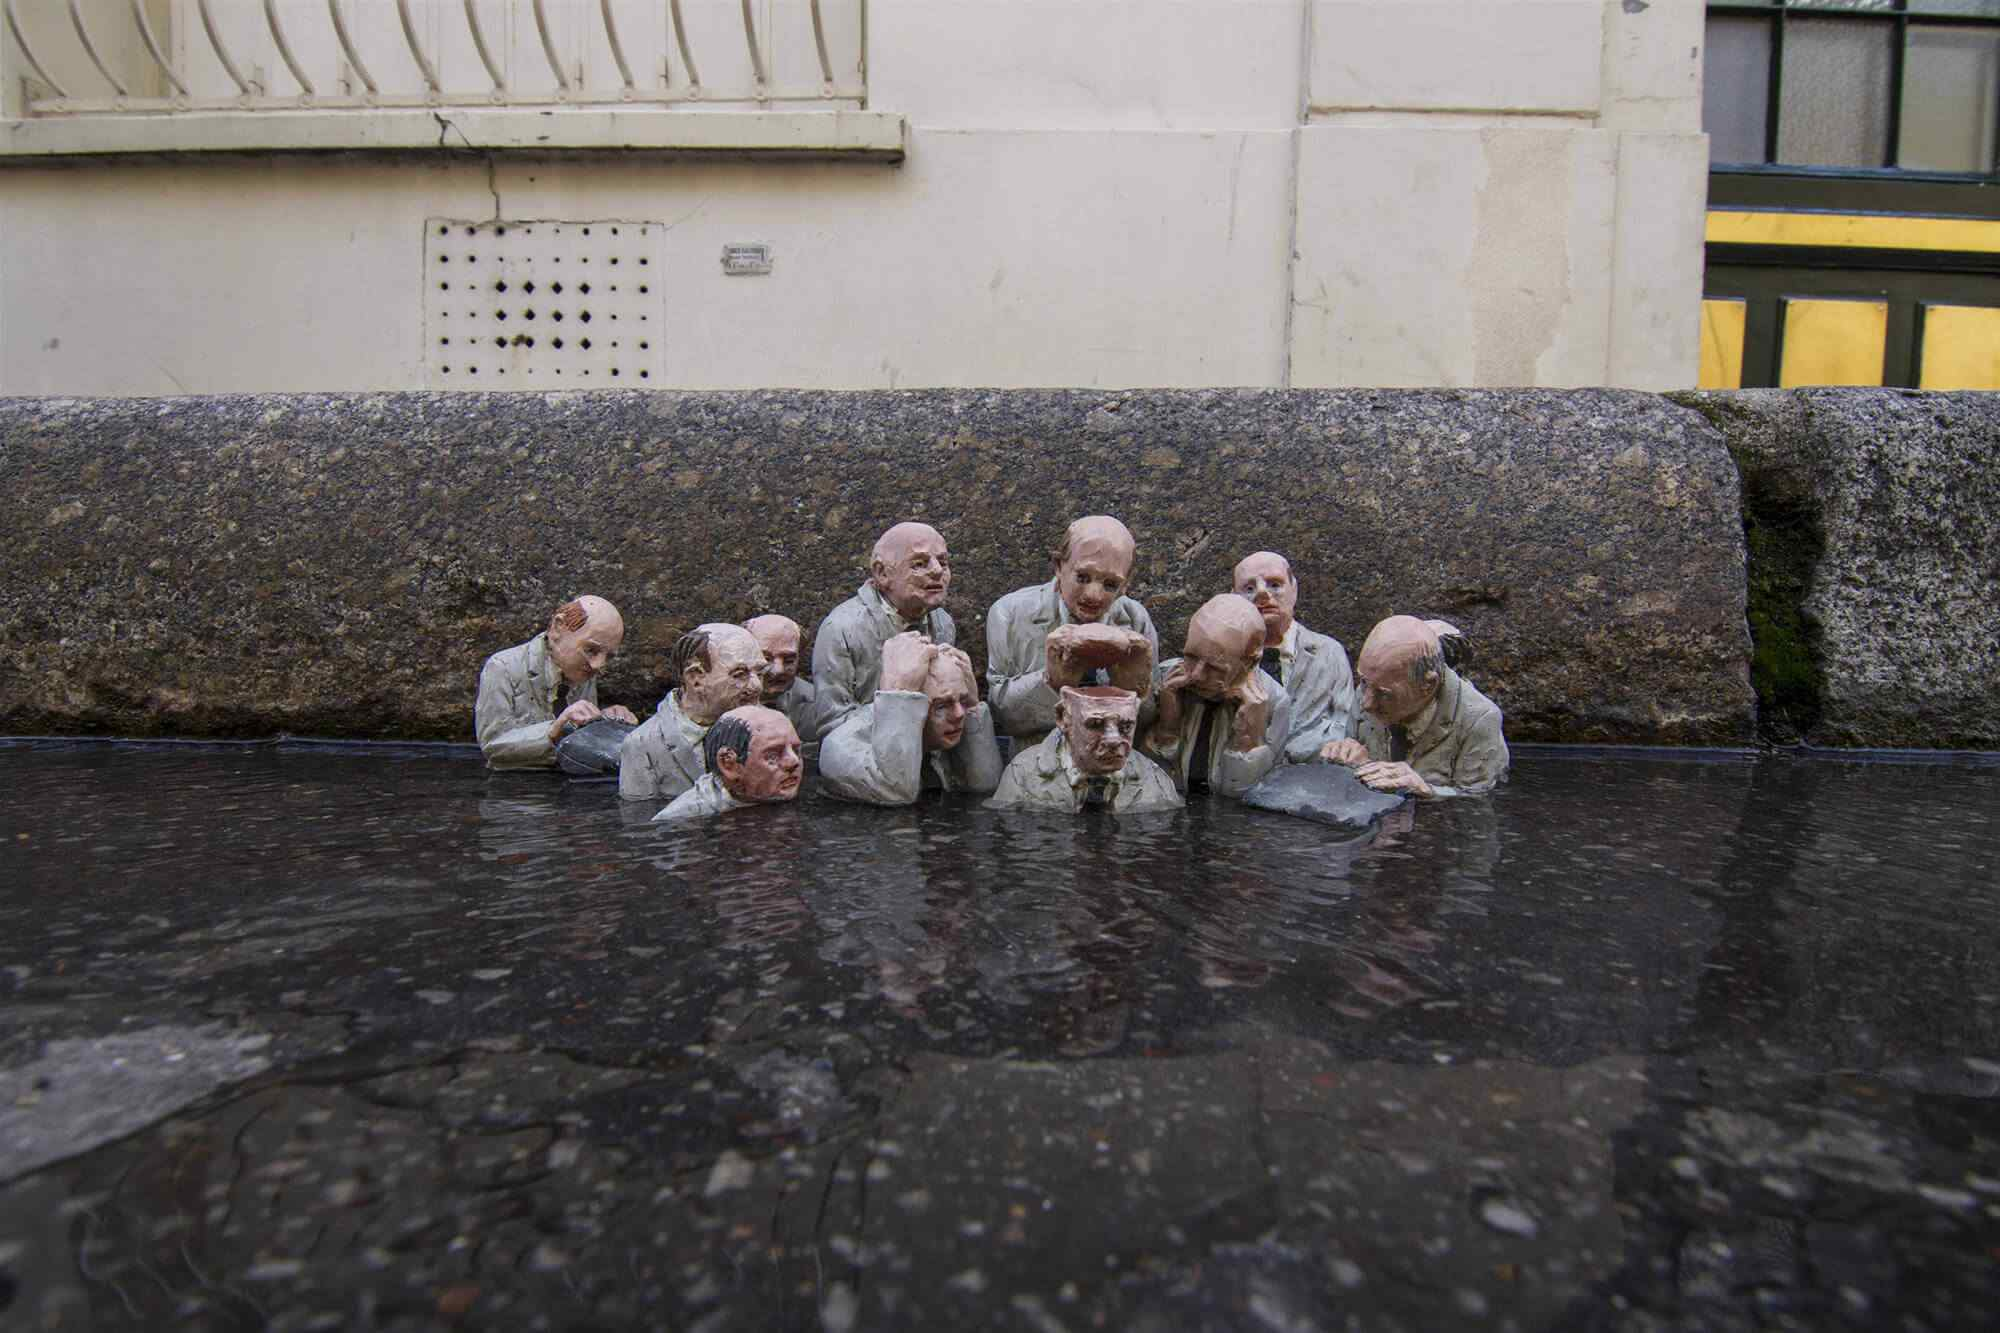 Electoral Campaign by Isaac Cordal